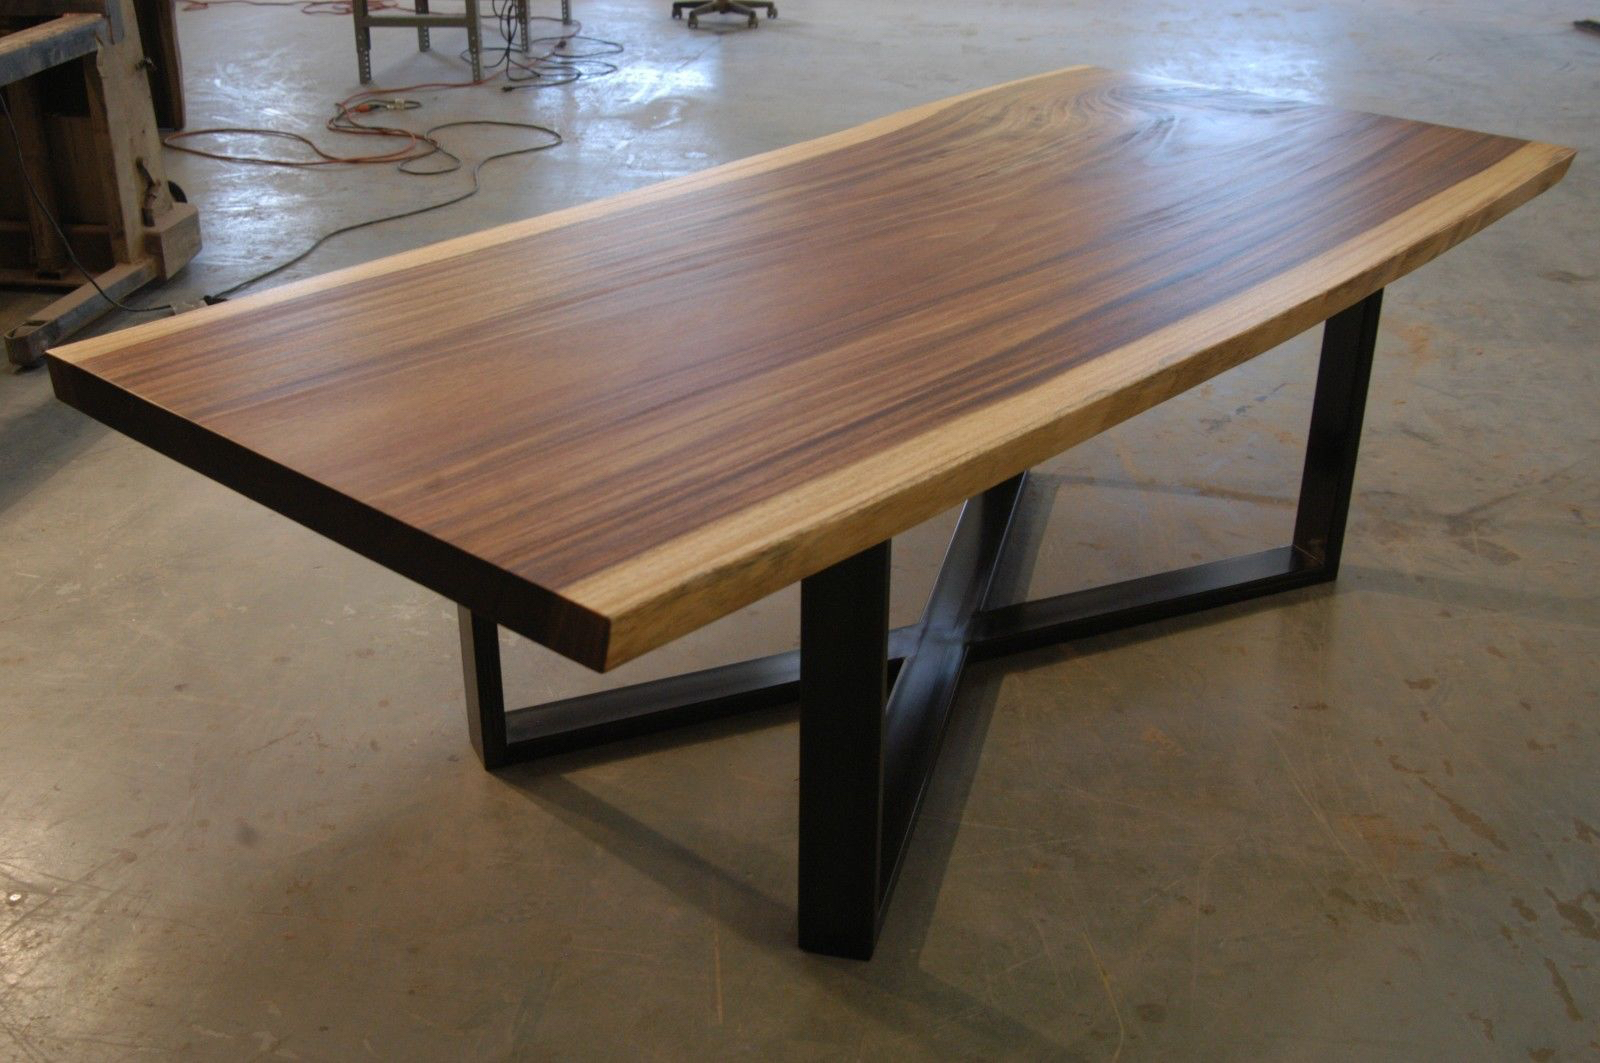 Reclaimed monkeypod slab dining table with cross leg bjorling grant monkeypodabdiningxleg4g watchthetrailerfo